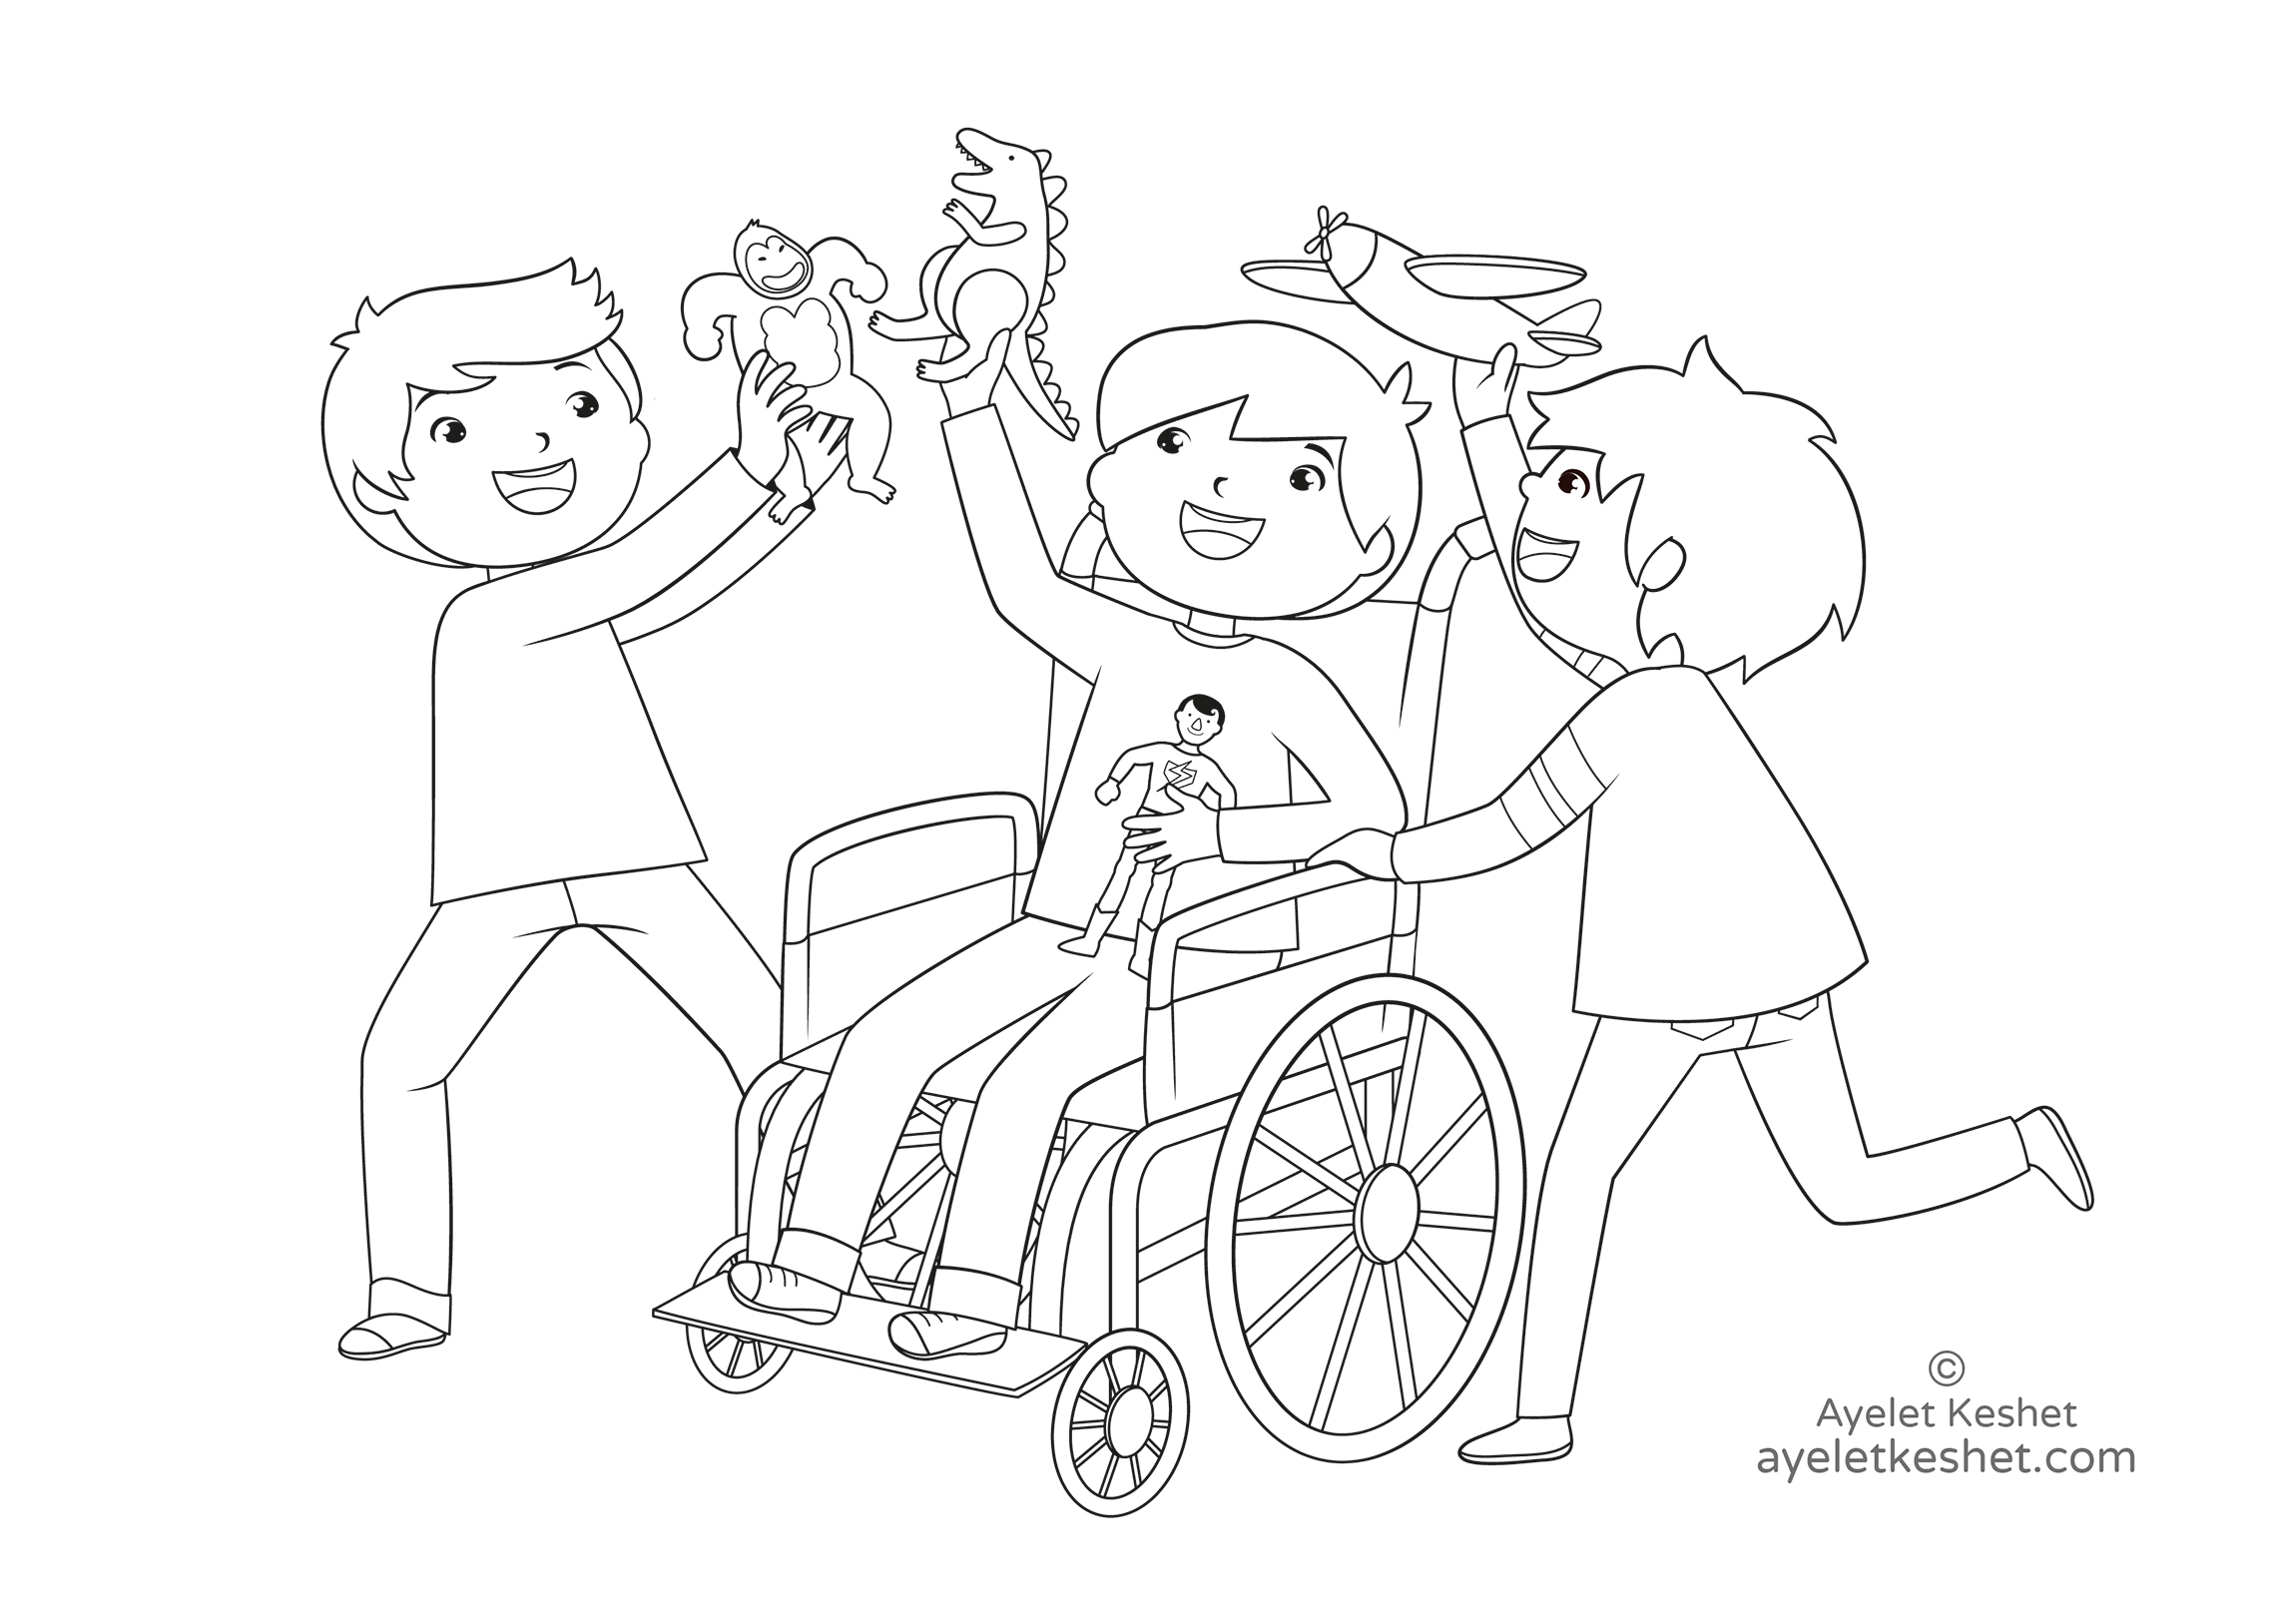 - Free Coloring Pages About Friendship - Ayelet Keshet